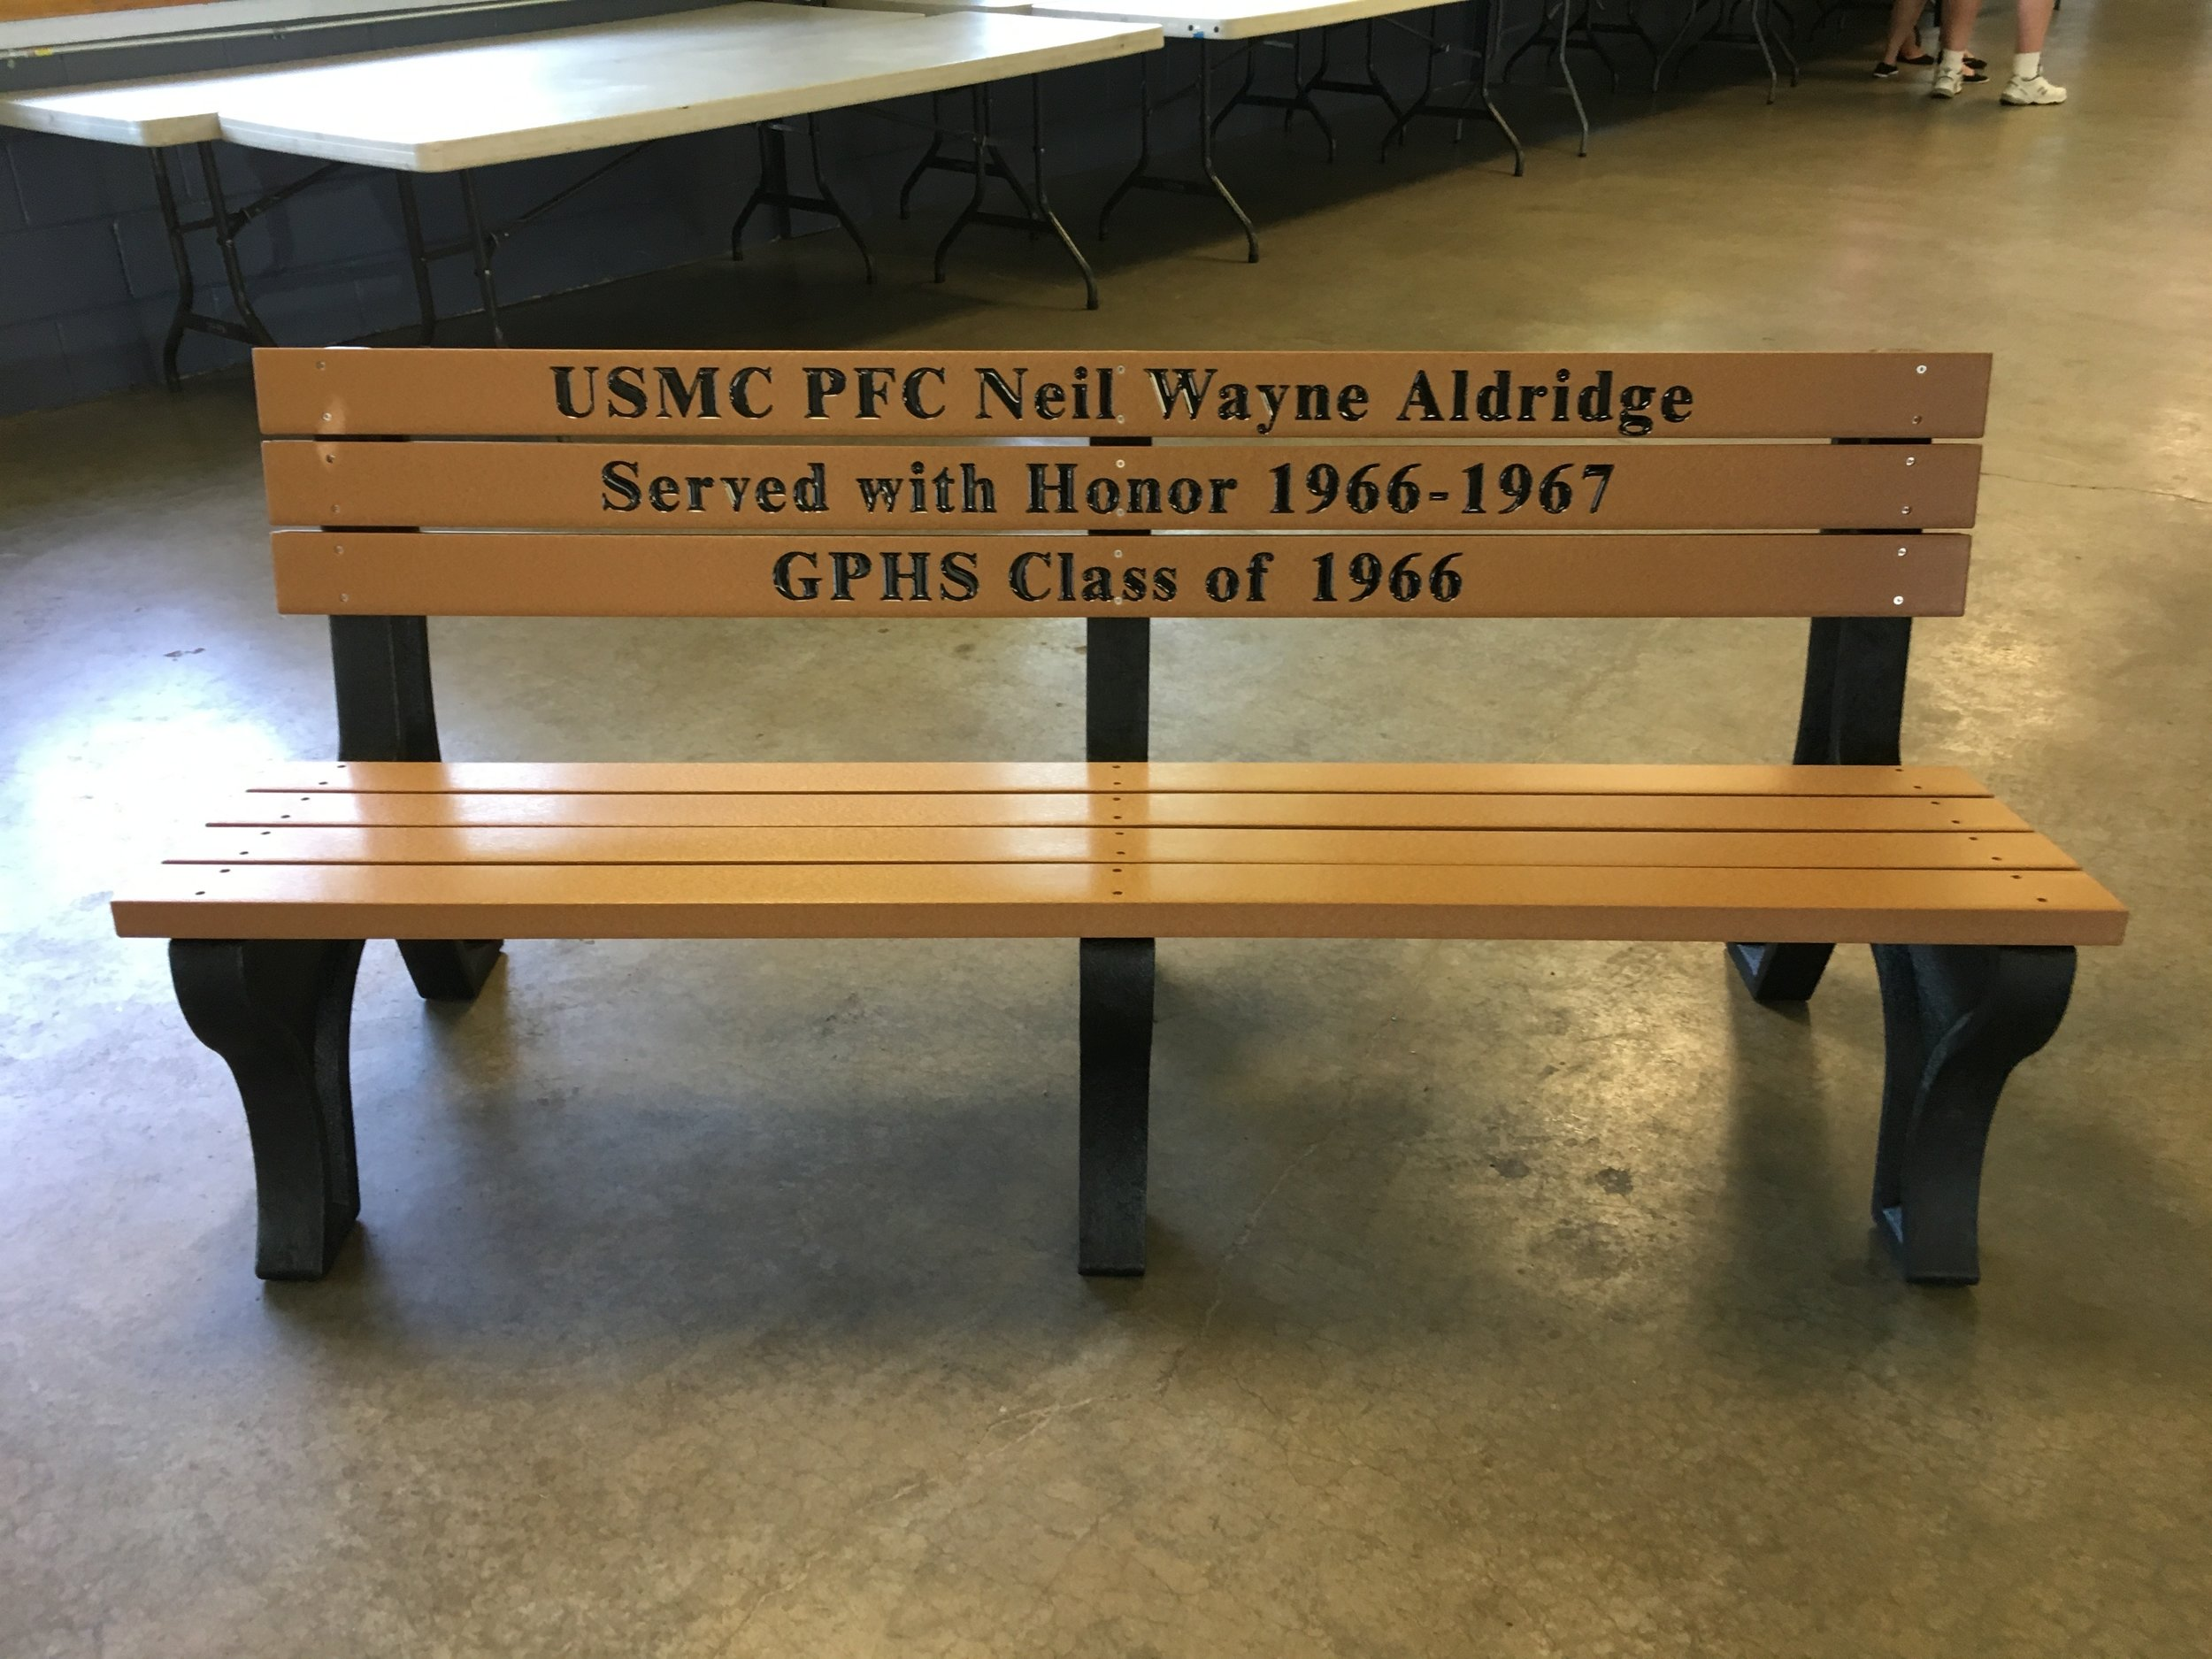 Bench dedicated to PFC Neil Wayne Aldridge, 2018.